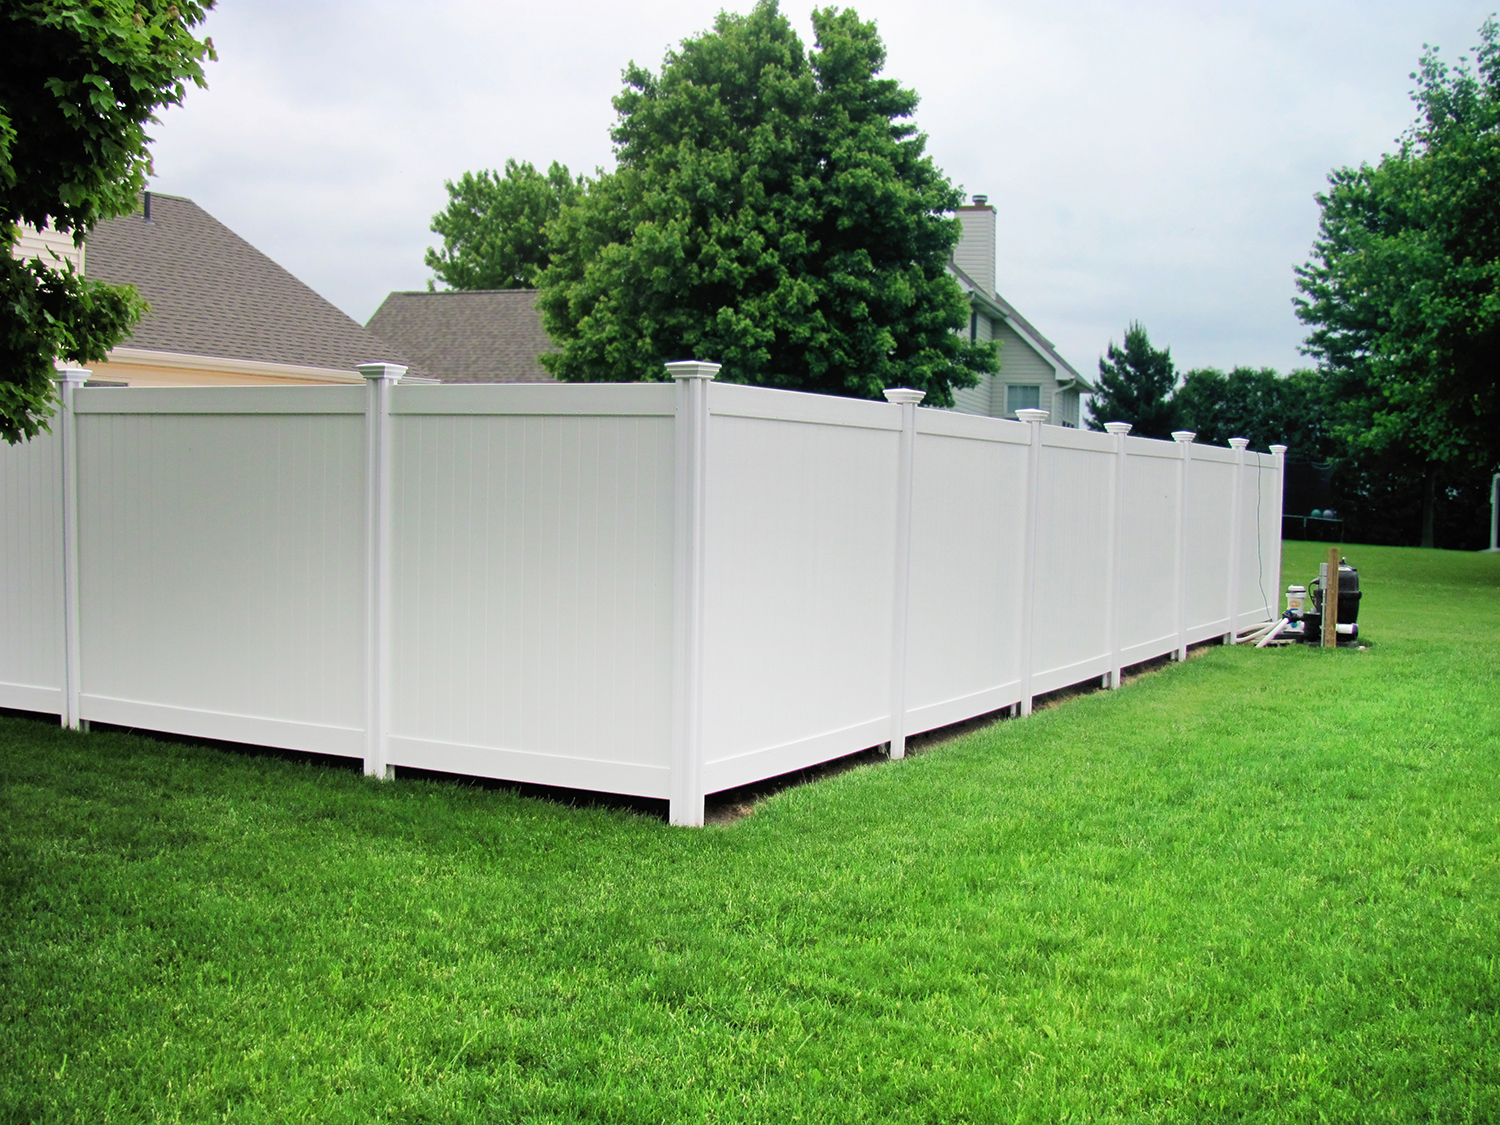 This vinyl privacy fence has been equalized